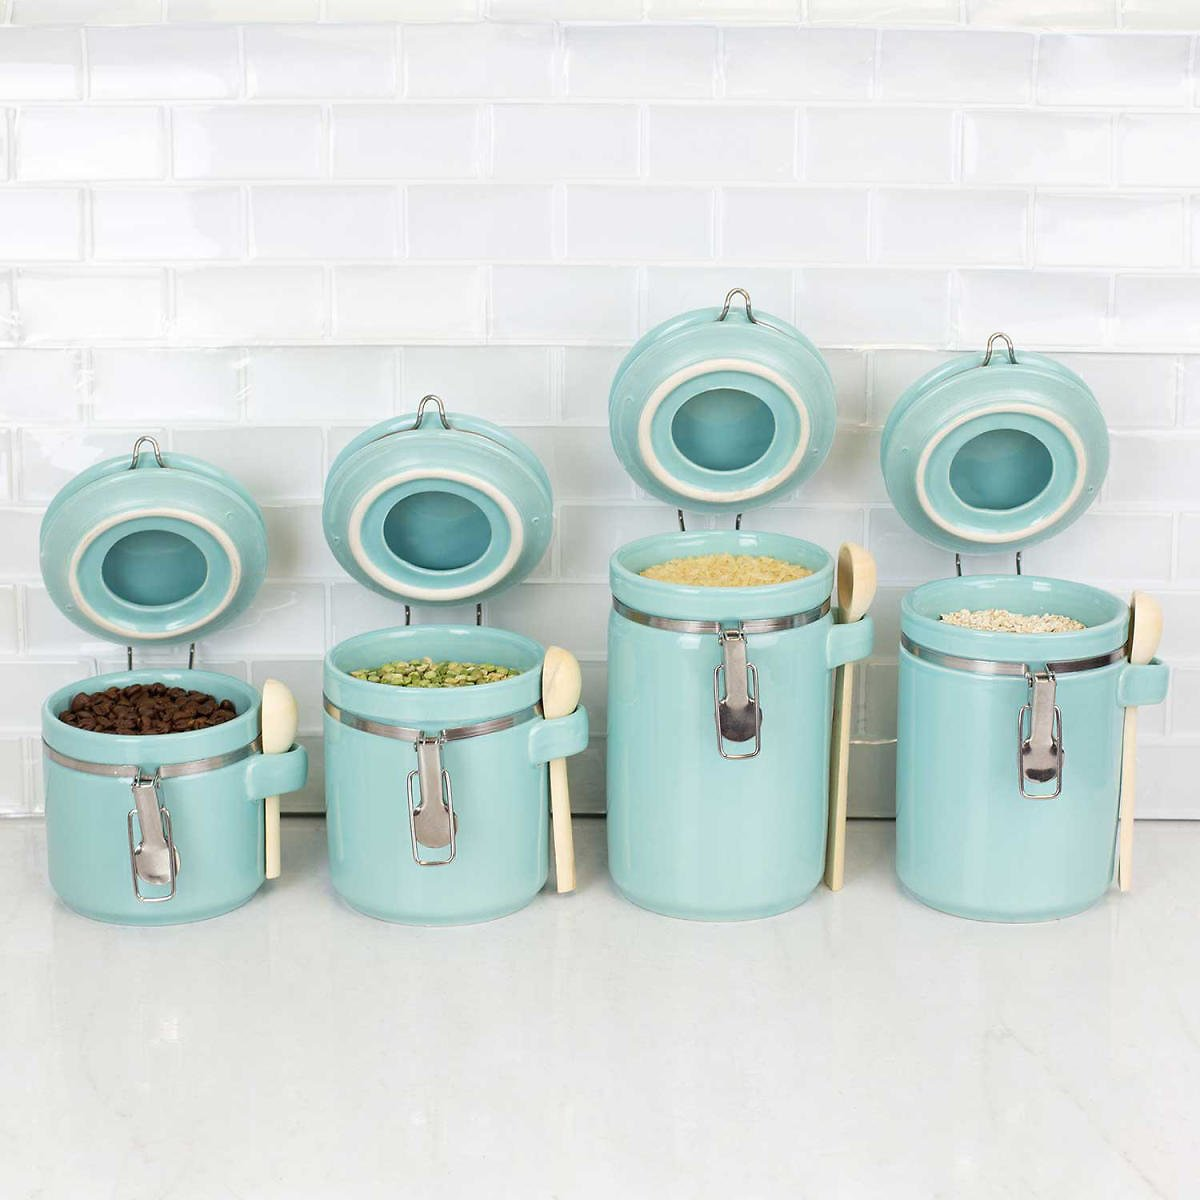 Ceramic Canisters with Air-Tight Clamp-Top Lids and Wooden Spoons, 4-Piece Set (4 Colors)